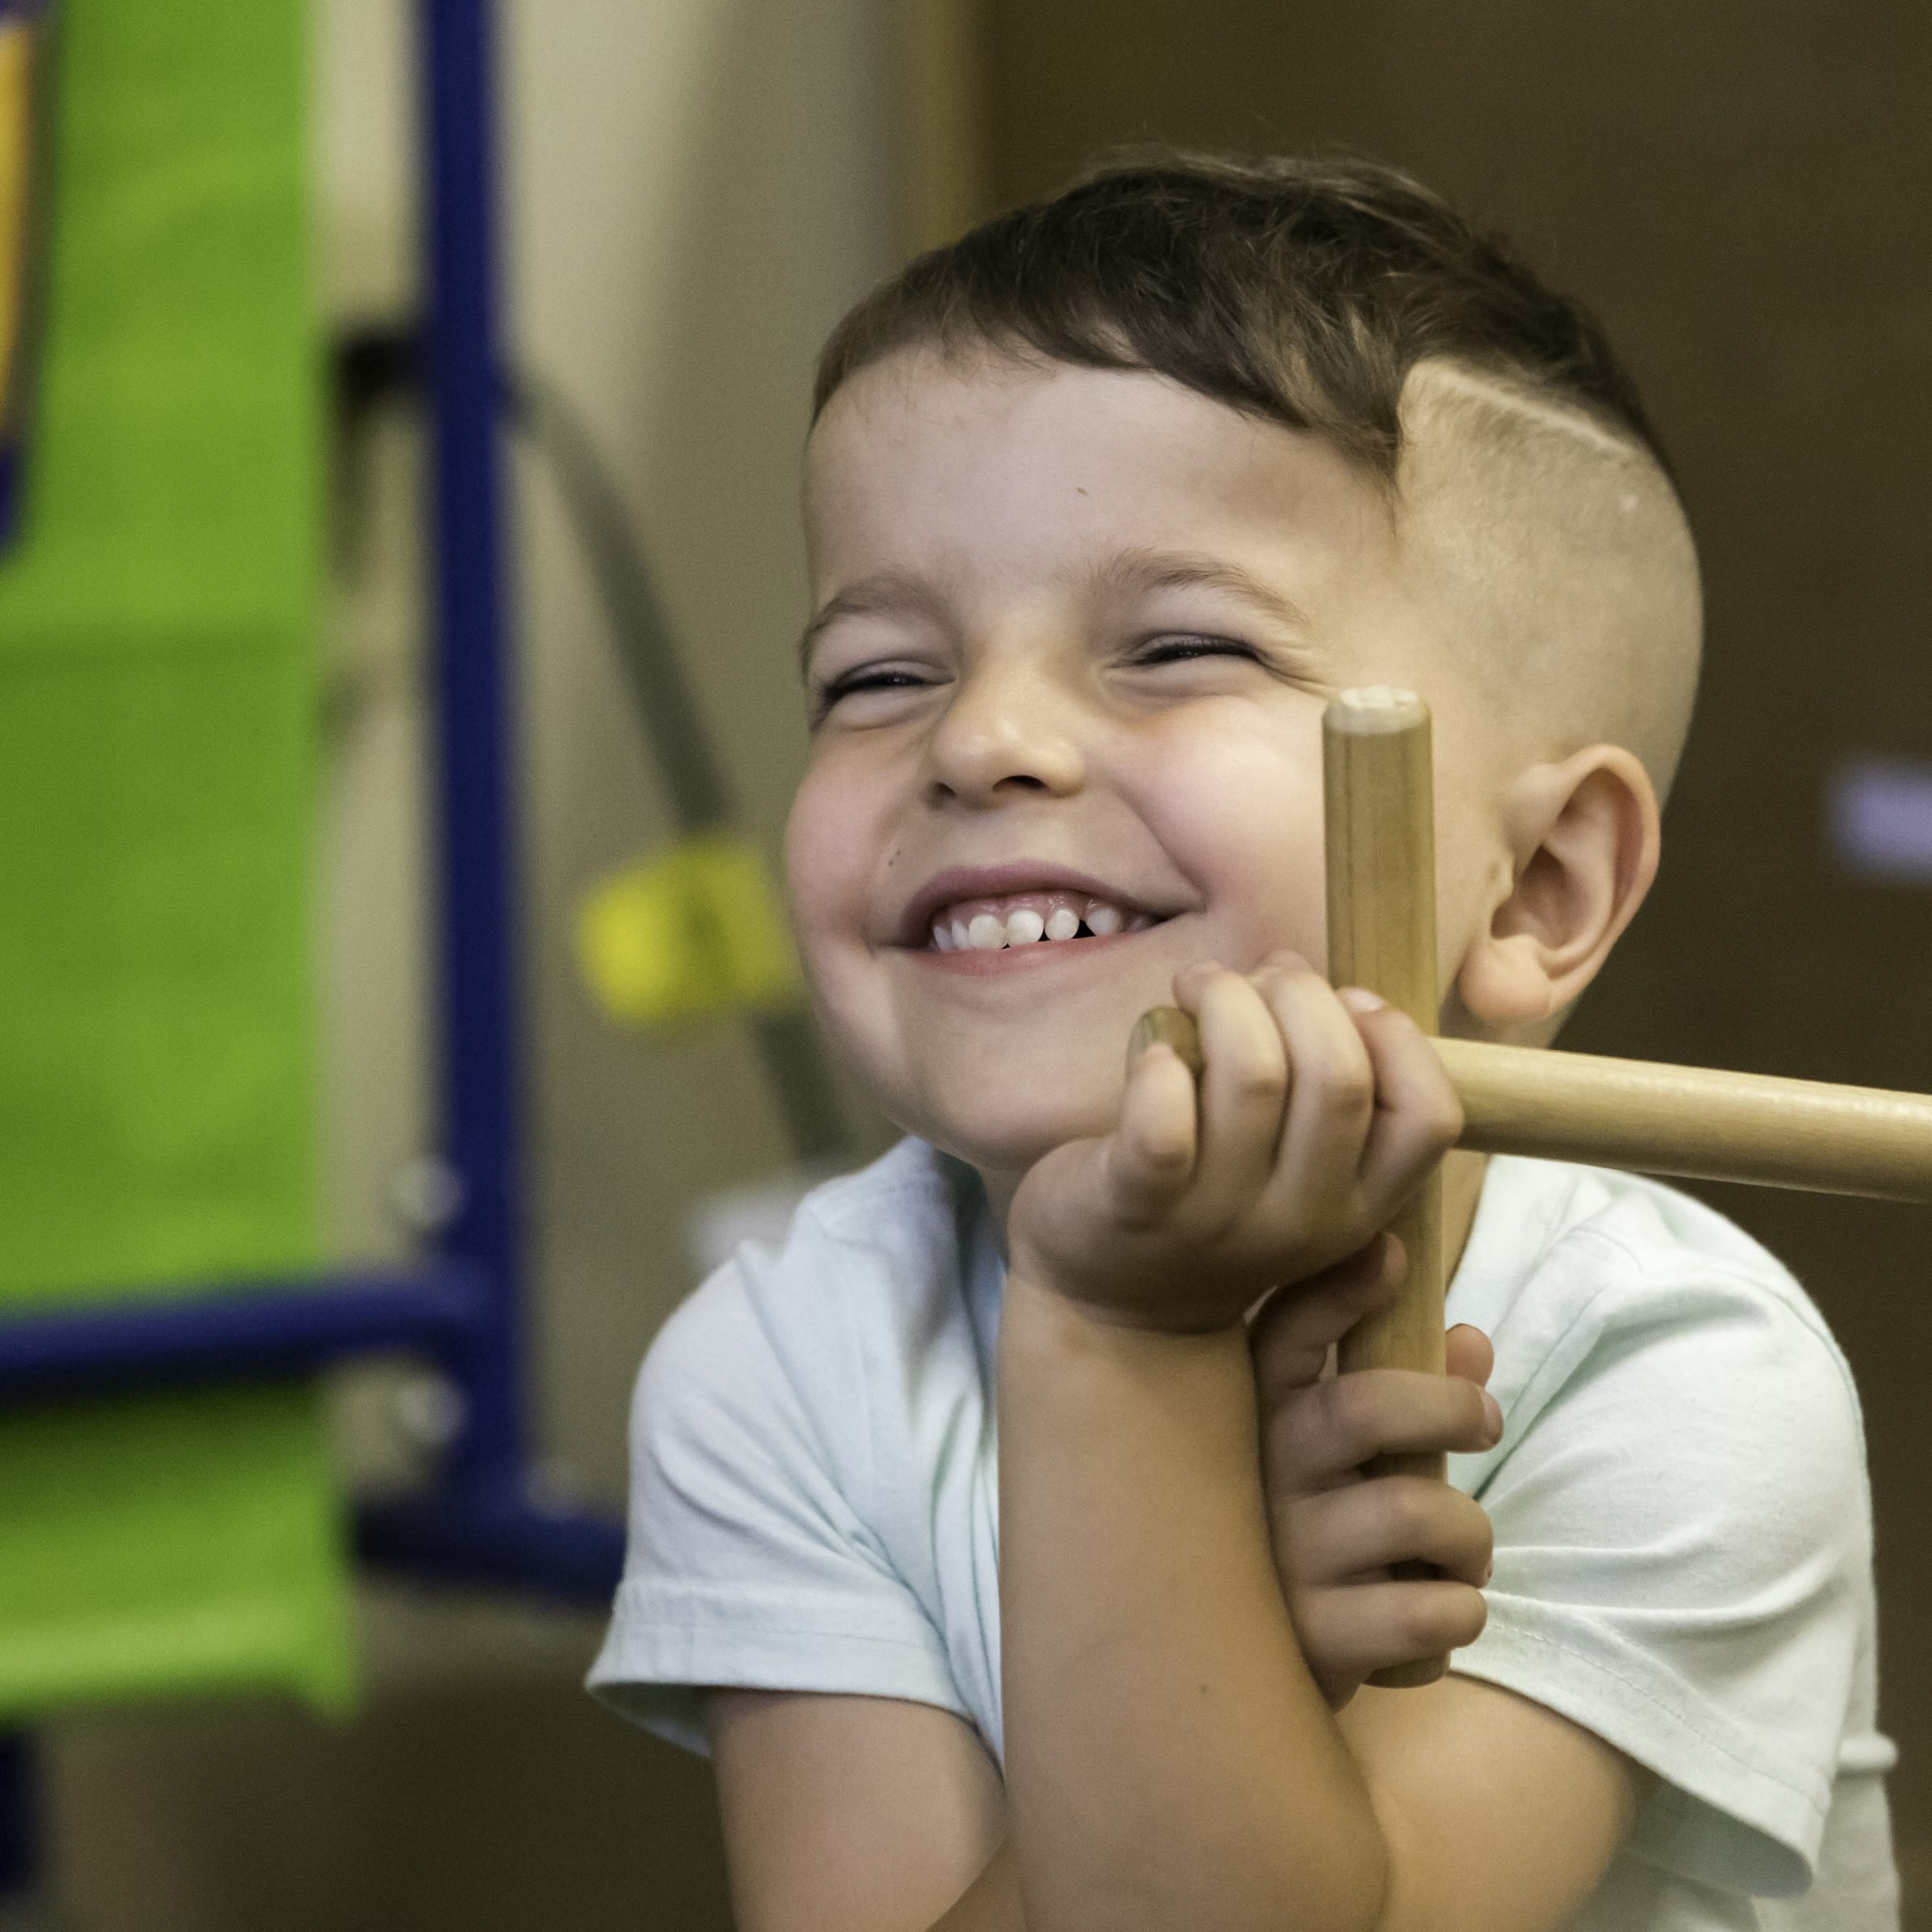 Prelude student smiling, holding wooden claves/rhythm sticks